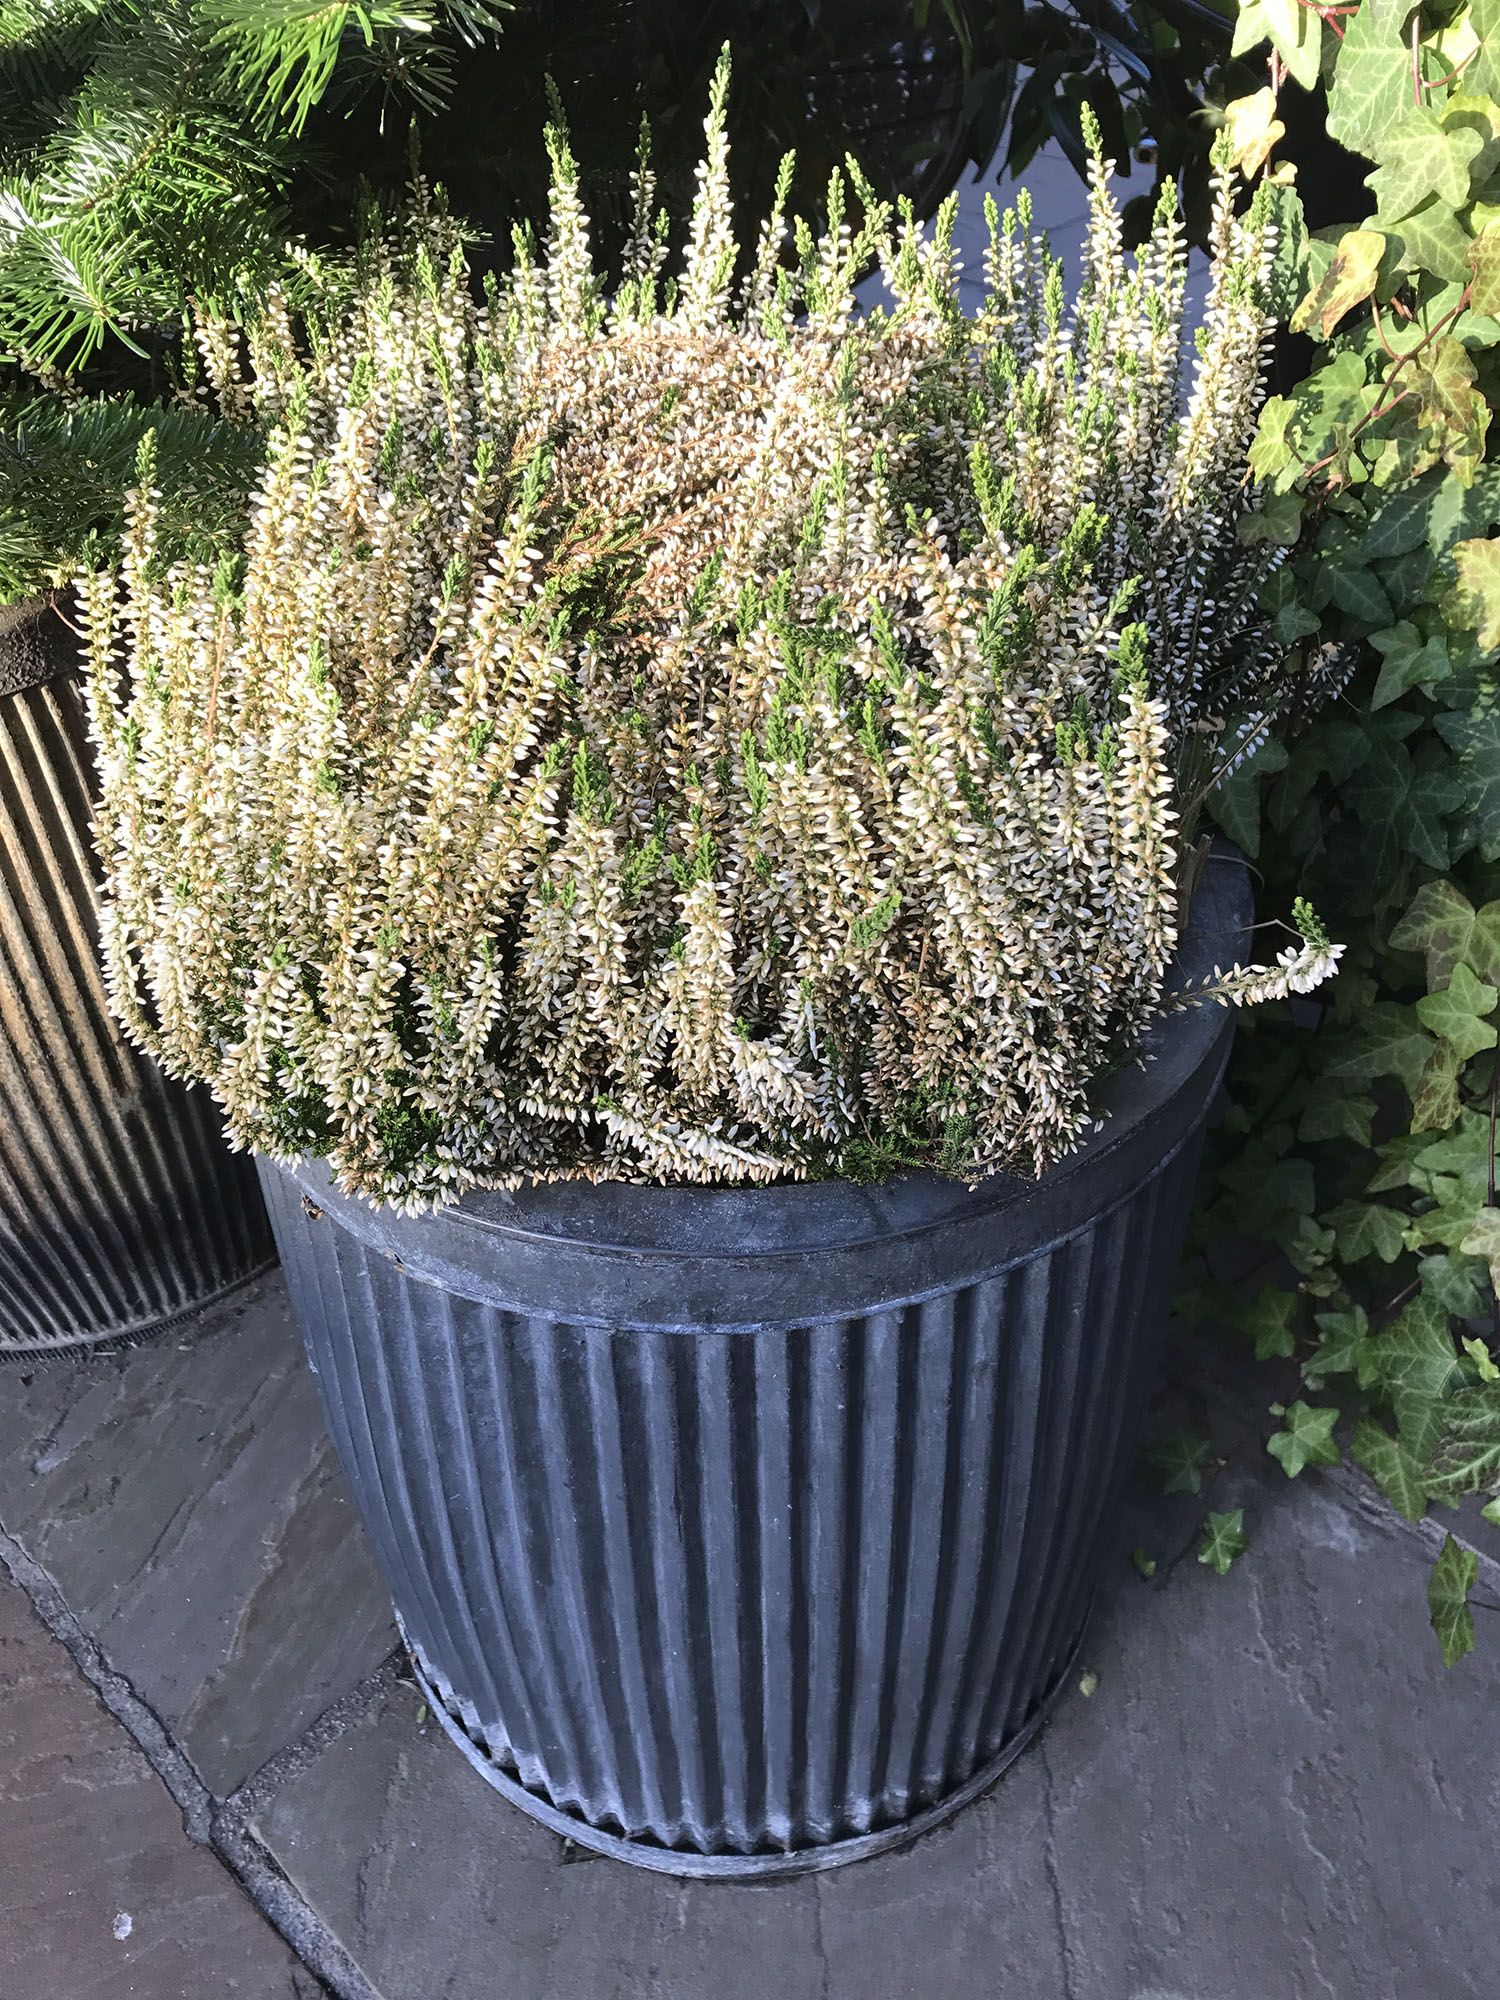 bicester village winter flowering plant displays heather